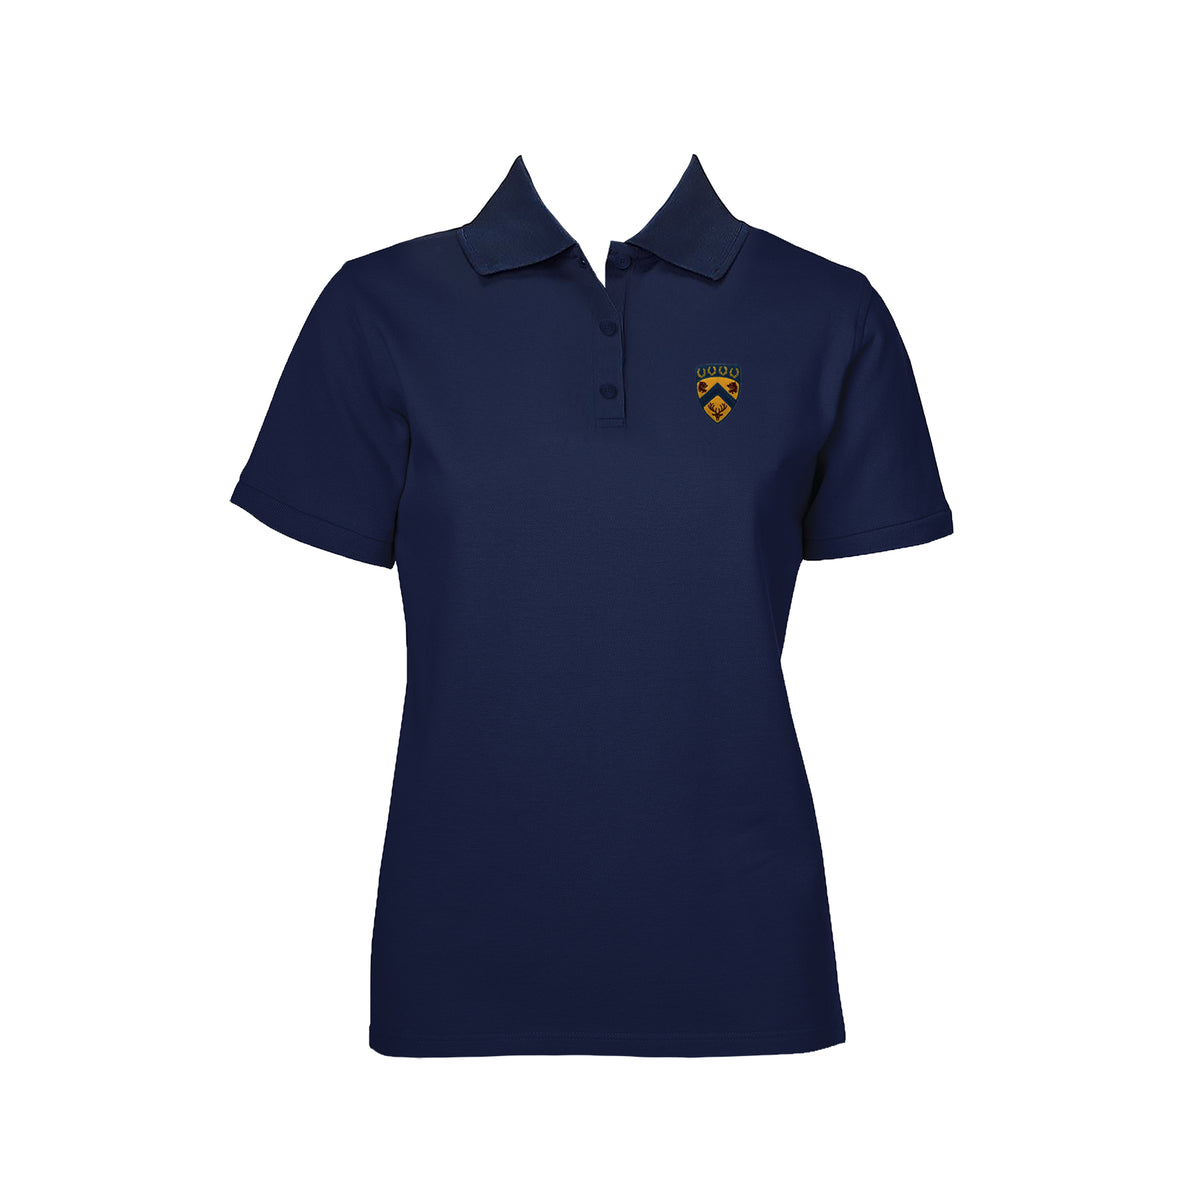 COLLINGWOOD NAVY GOLF SHIRT, GIRLS, SHORT SLEEVE, ADULT